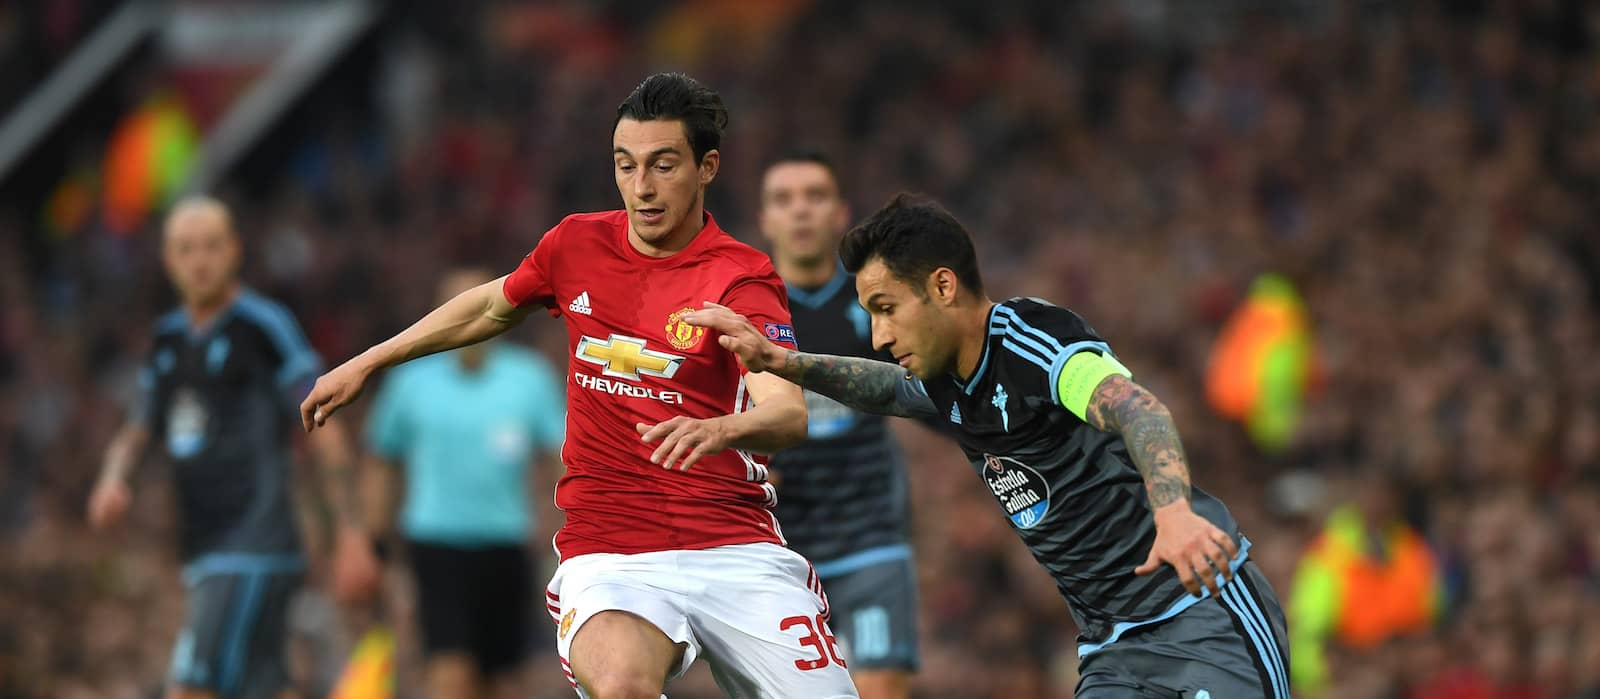 Gianluca di Marzio: Inter Milan make contact with Matteo Darmian over potential move